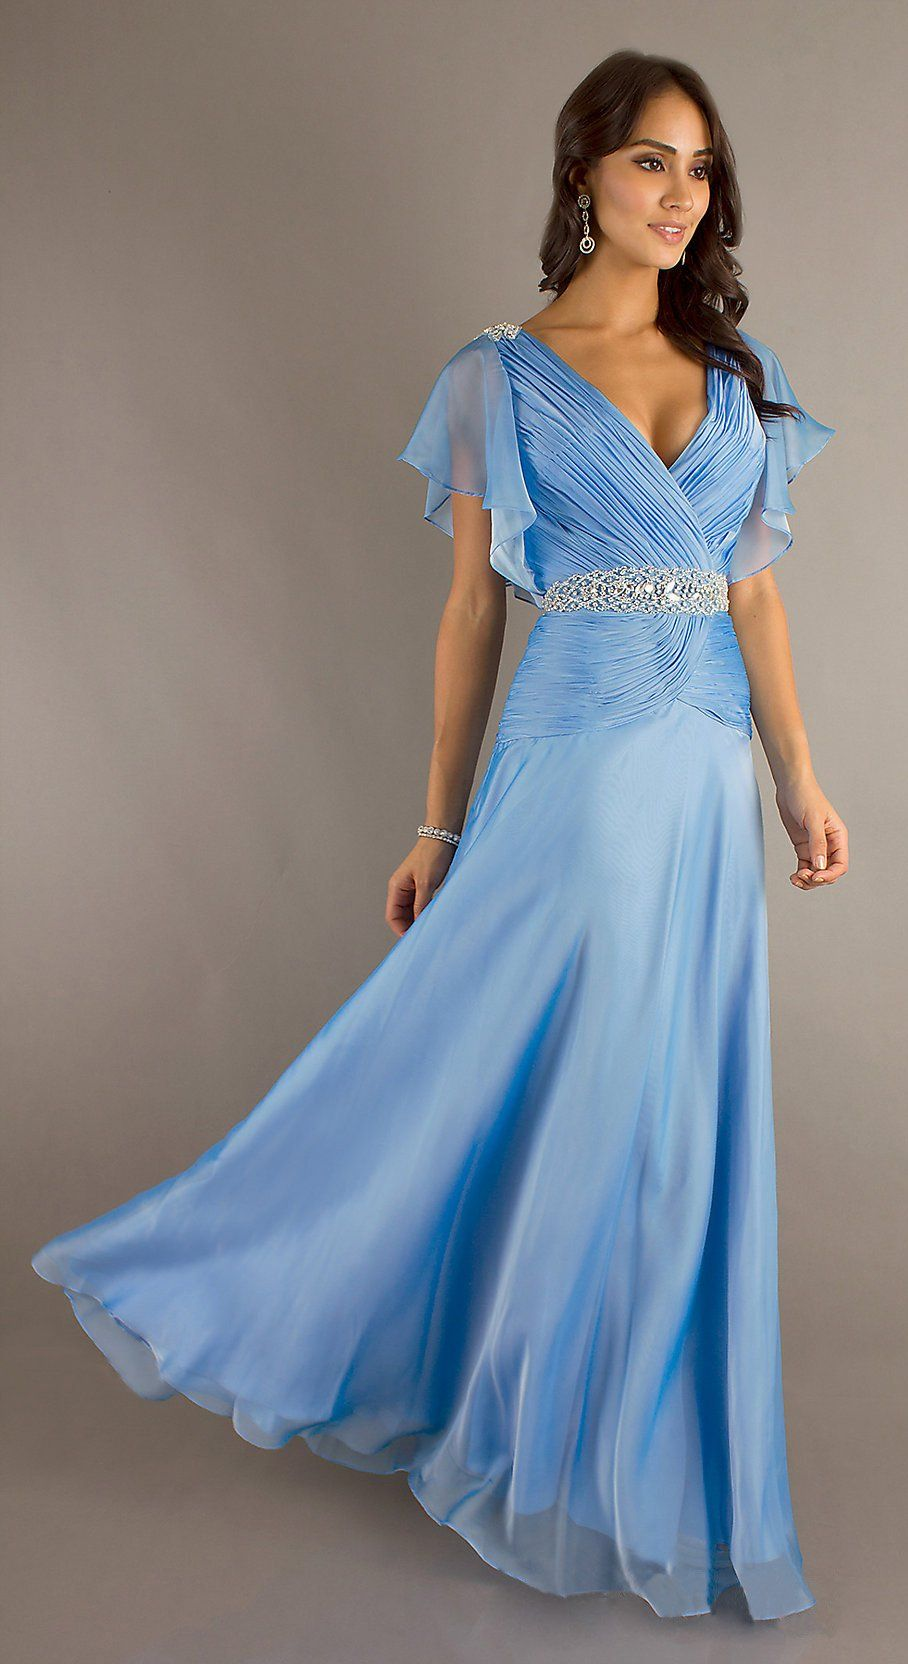 Modest Long Periwinkle Formal Gown V Neckline Short Sleeve Chiffon ...